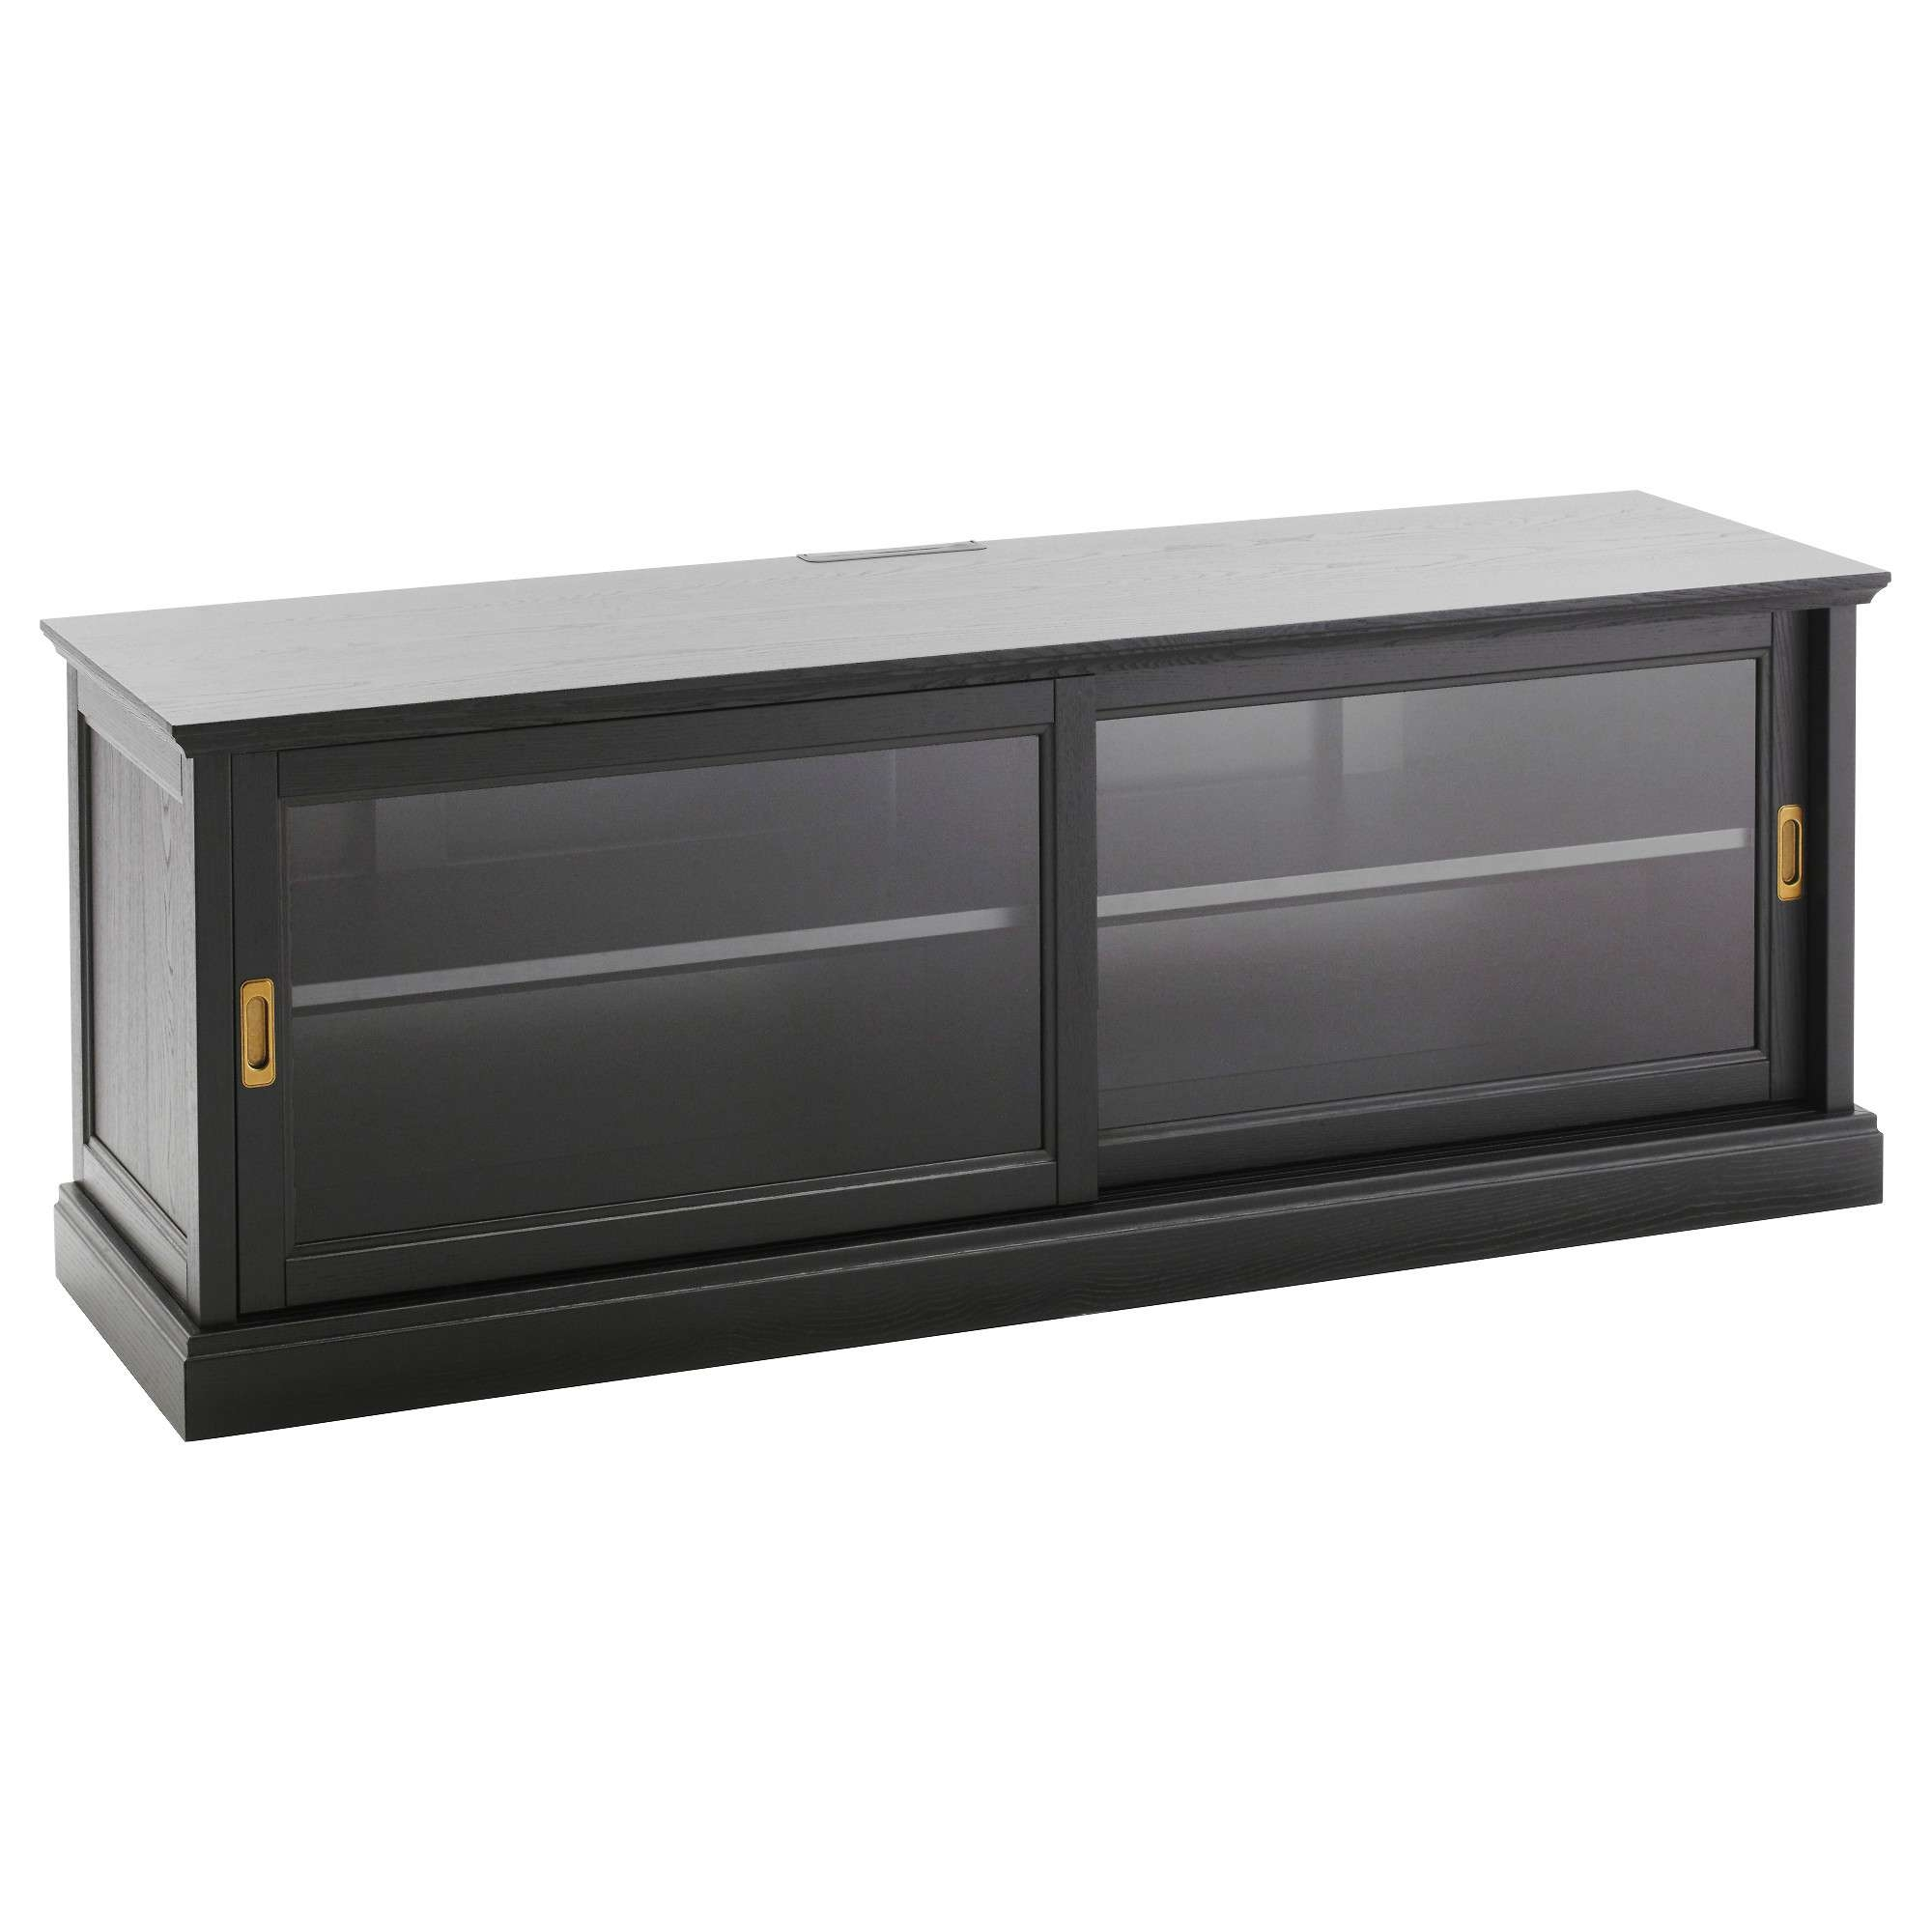 Furniture Accessories : Diy Ikea Tvs Stands Ideas Small Black In Glass Front Tv Stands (View 11 of 20)